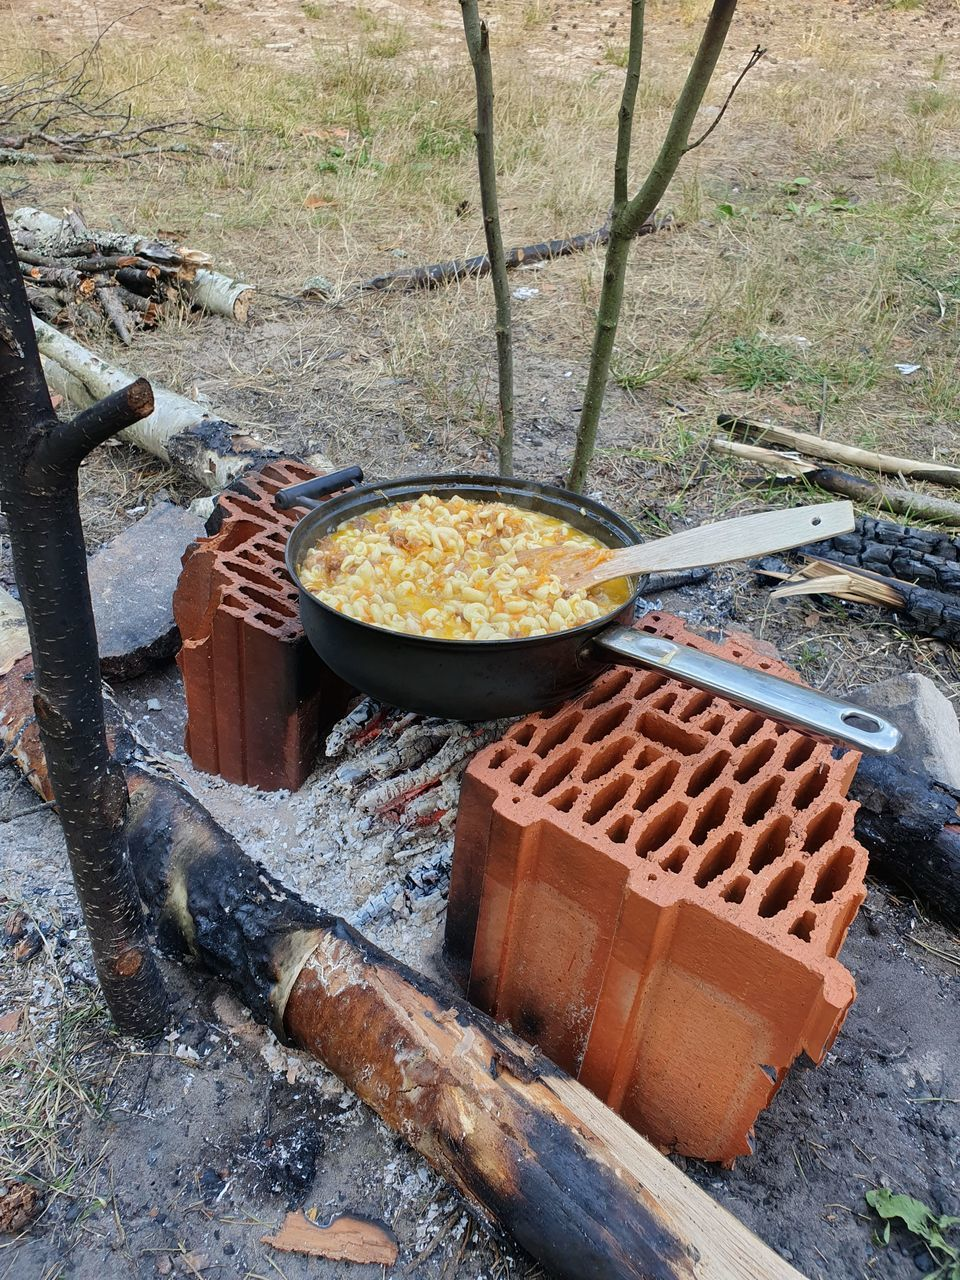 food, food and drink, day, high angle view, kitchen utensil, nature, container, no people, tree, preparing food, wood - material, freshness, heat - temperature, preparation, household equipment, metal, outdoors, burning, plant, log, camping stove